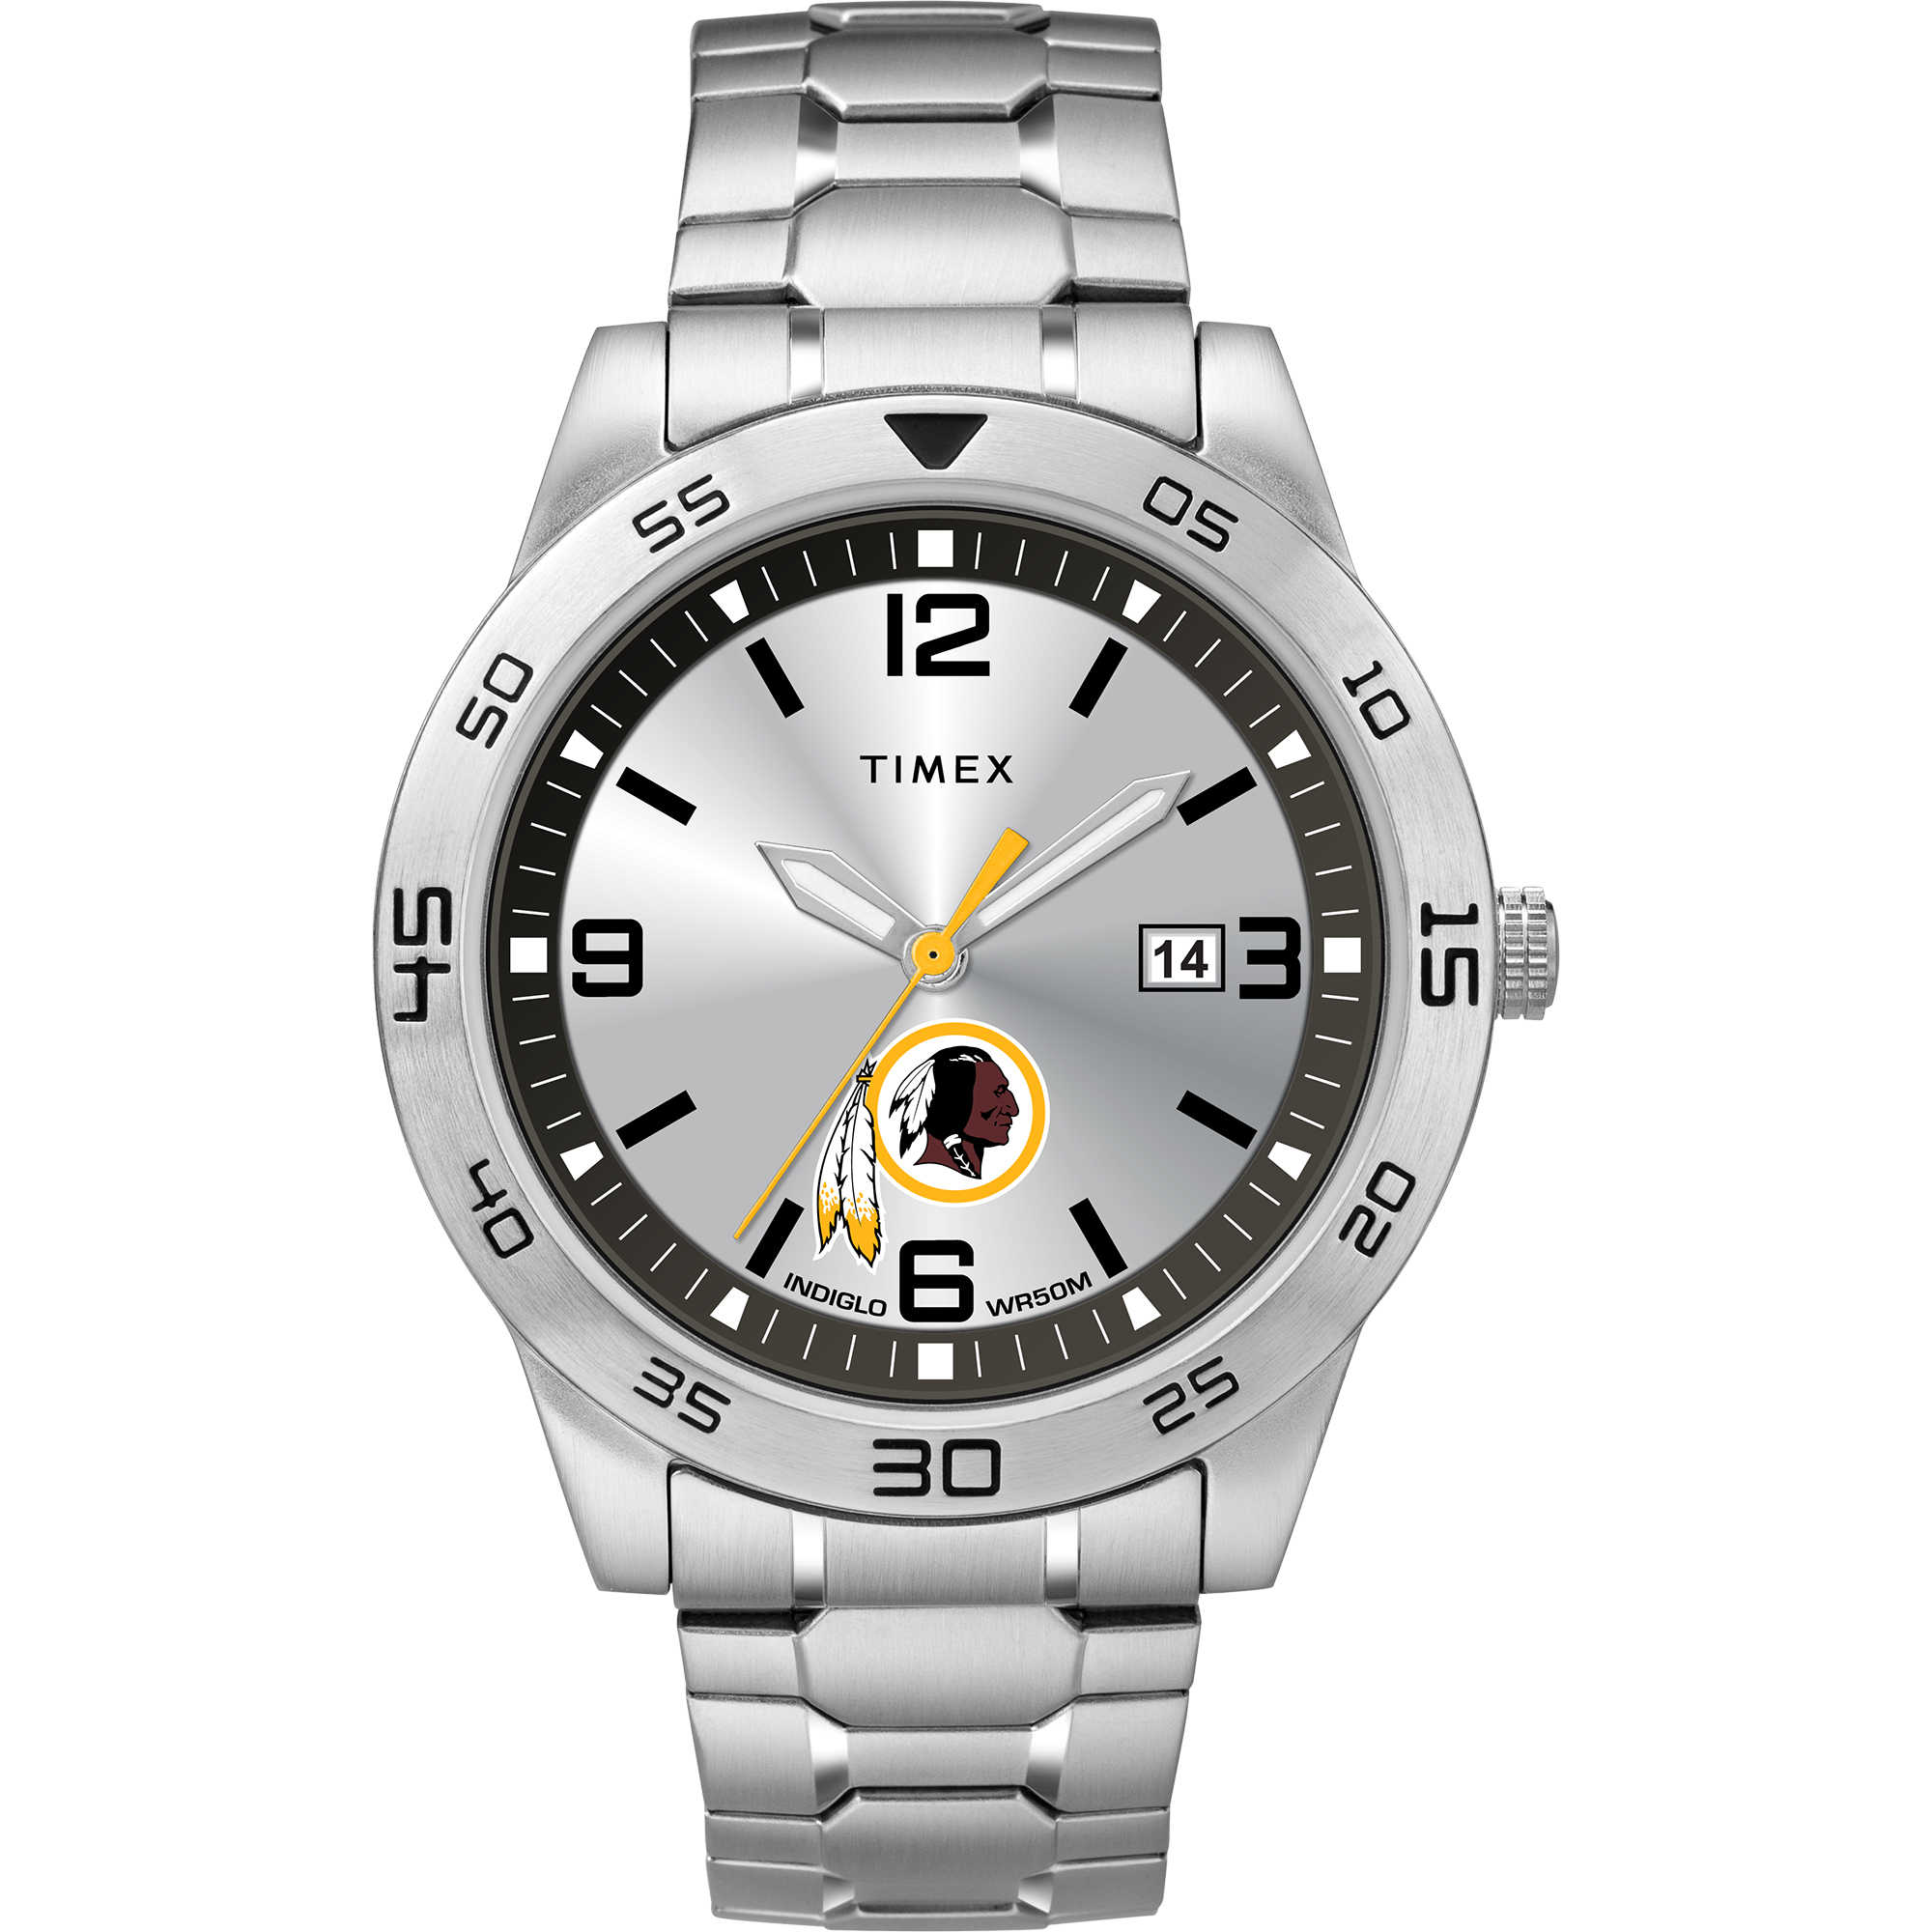 Timex - NFL Tribute Collection Citation Men's Watch, Washington Redskins